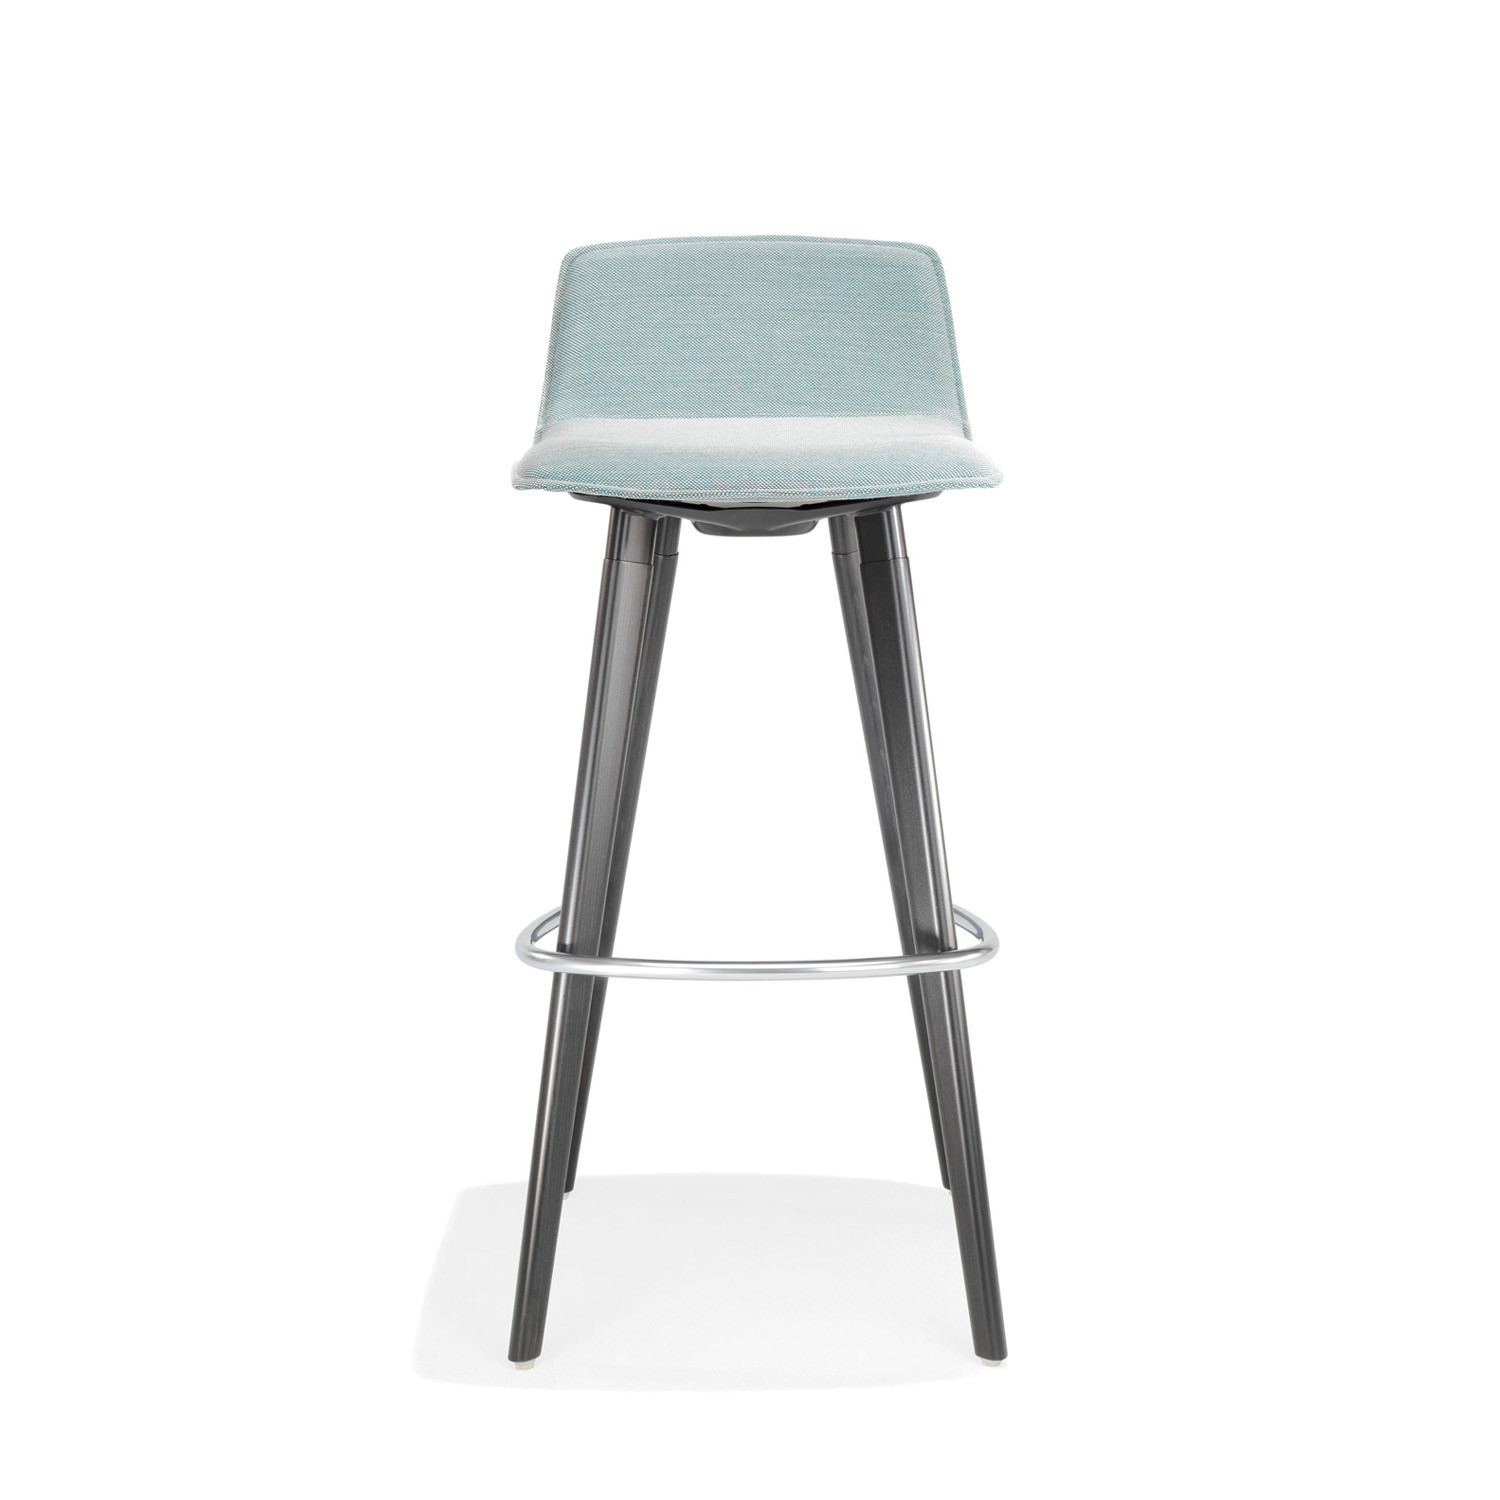 2180 Uni_Verso Barstool with wooden legs